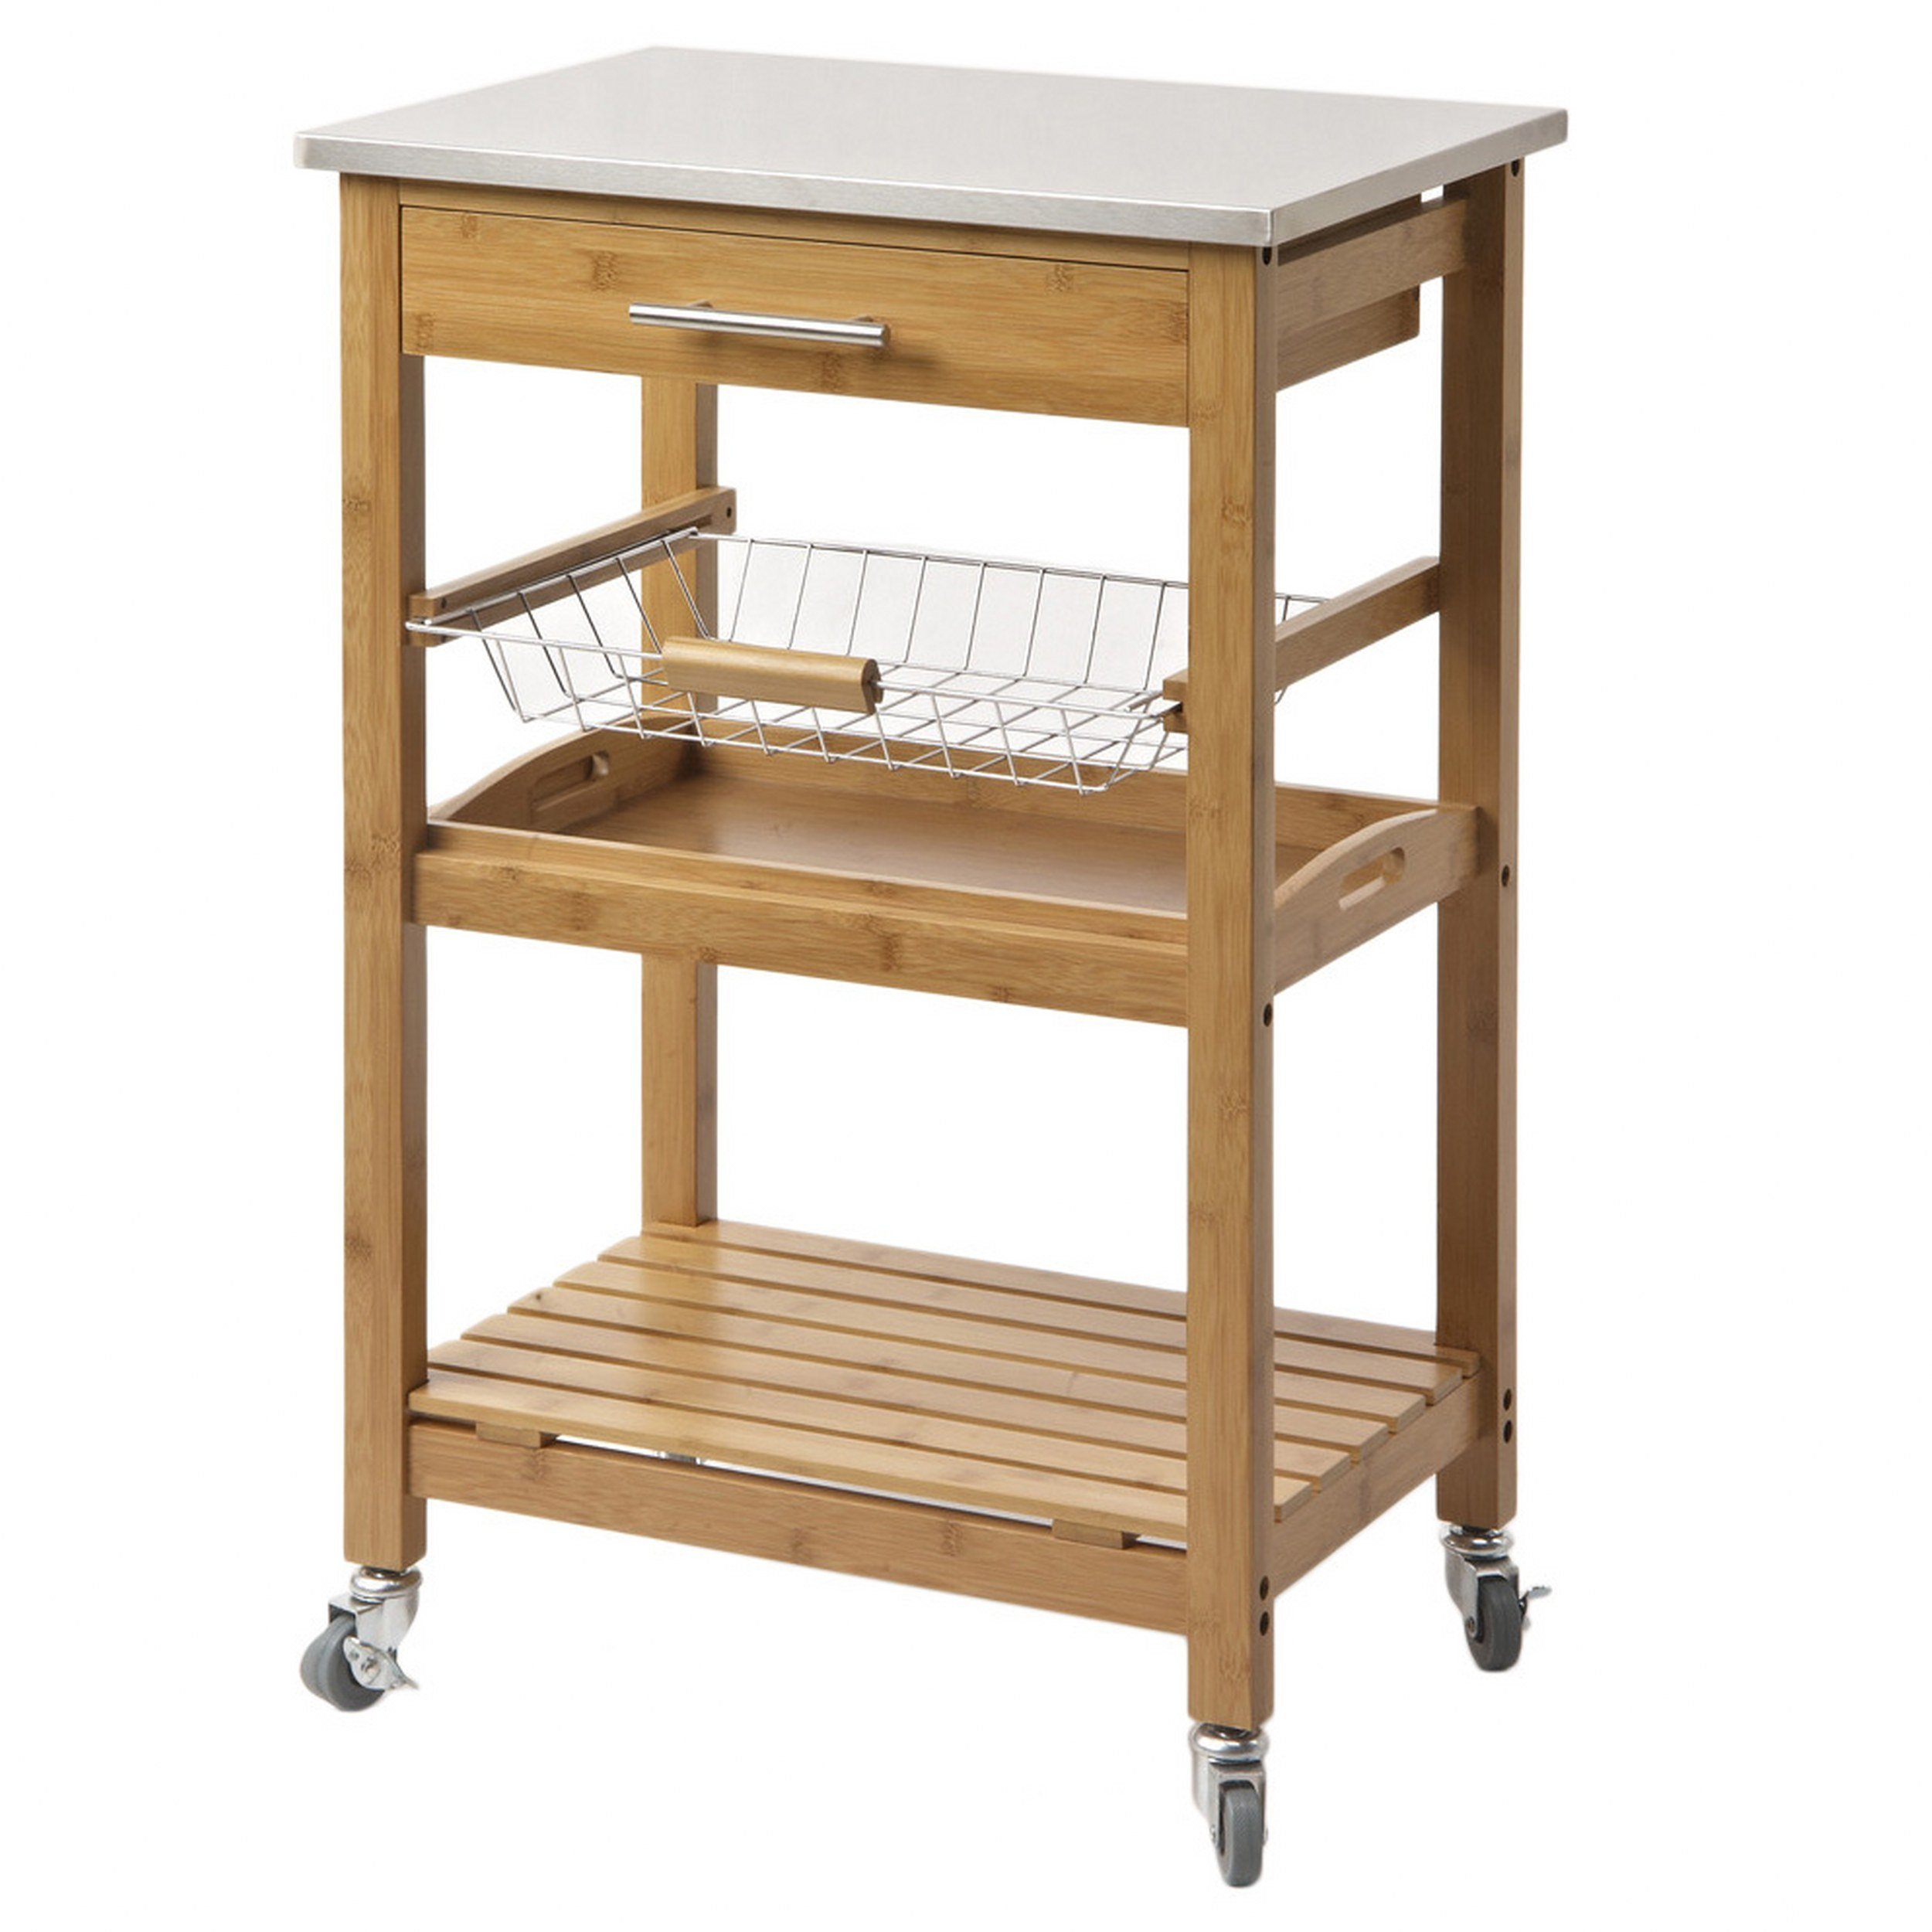 Contemporary Style Bamboo Kitchen Rolling Cart Stainless Steel Top with 1 Pull Out Storage Drawer and Wire Basket and Bottom Shelf | Natural Finish - Includes Modhaus Living Pen